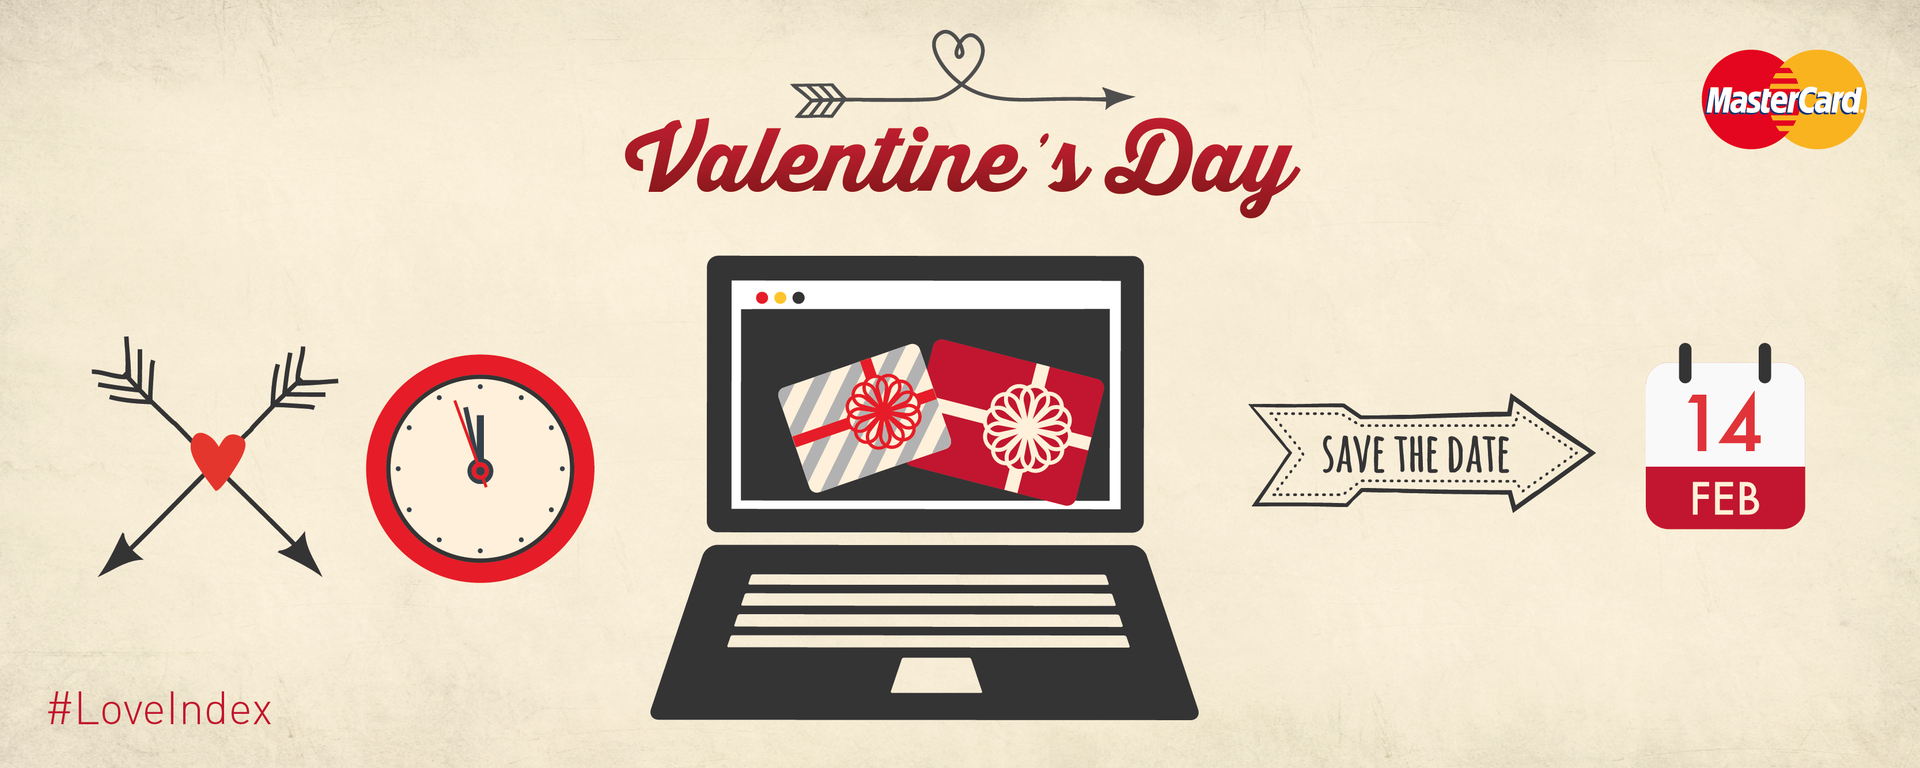 Mastercard love index highlights increase in last minute spending